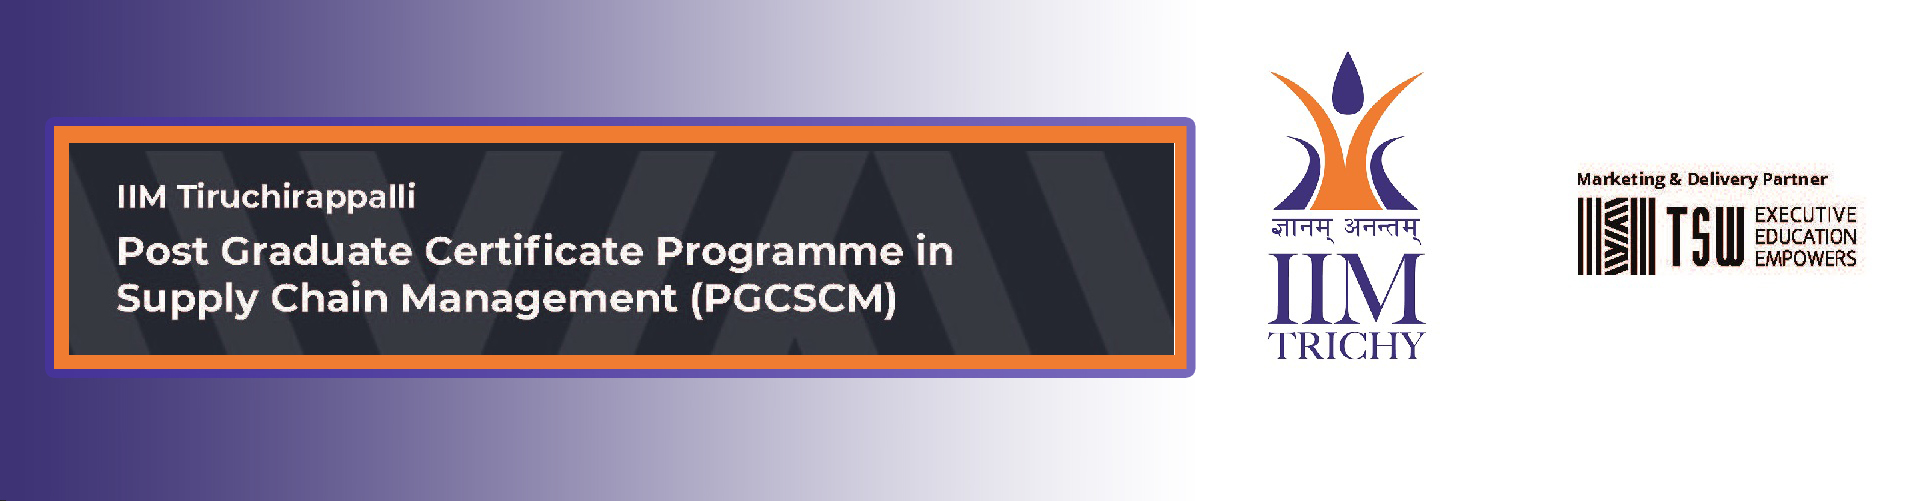 Post Graduate Certificate Programme in Supply Chain Management